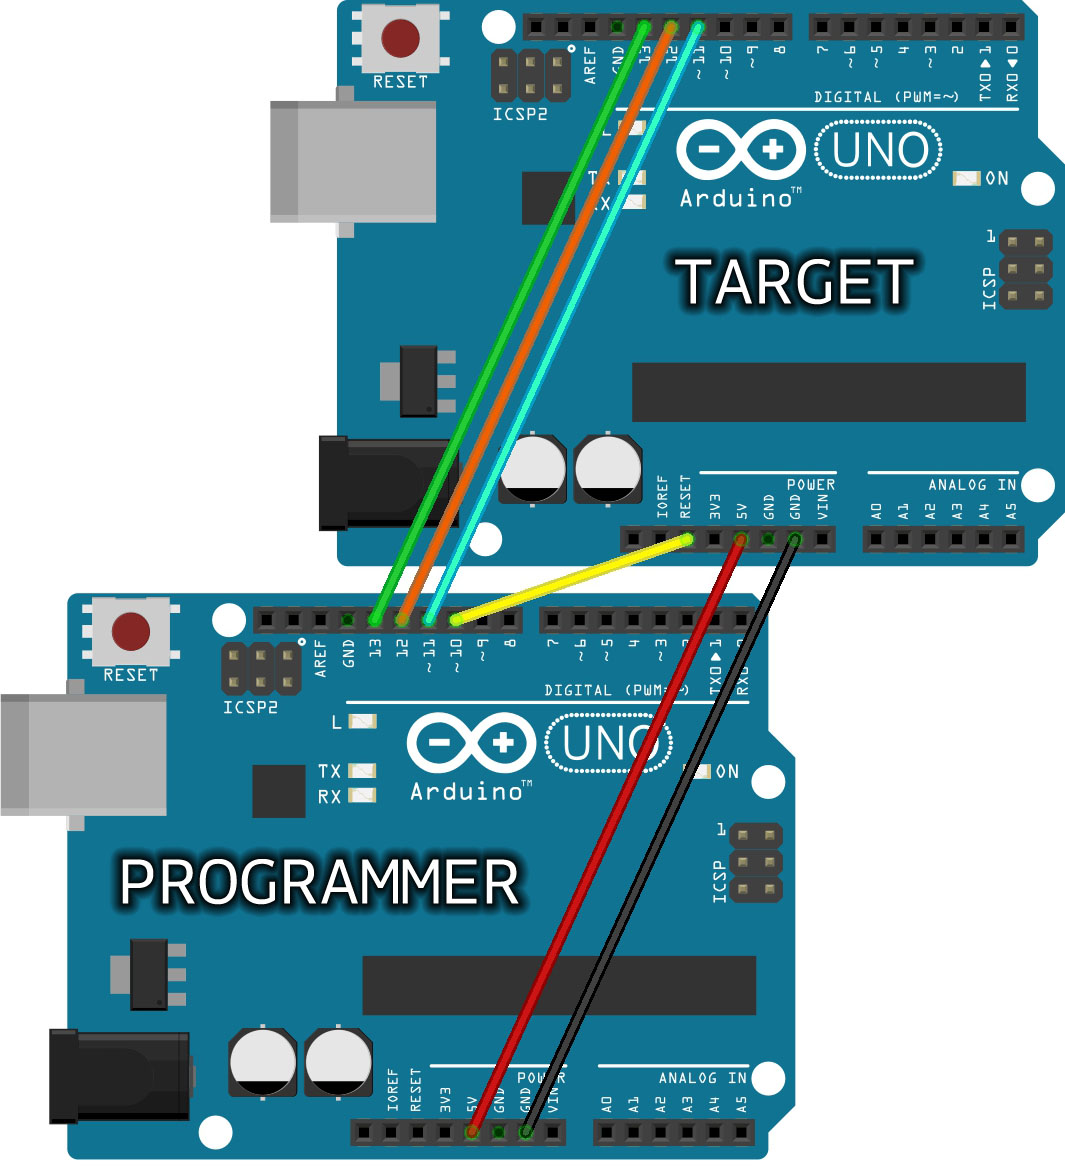 Arduino Arduinoisp Pic Programmer Schematic Together With Serial Are Connecting Two Uno Boards For Bootloader Burning The Old Style Connections Top Board Is Target Bottom